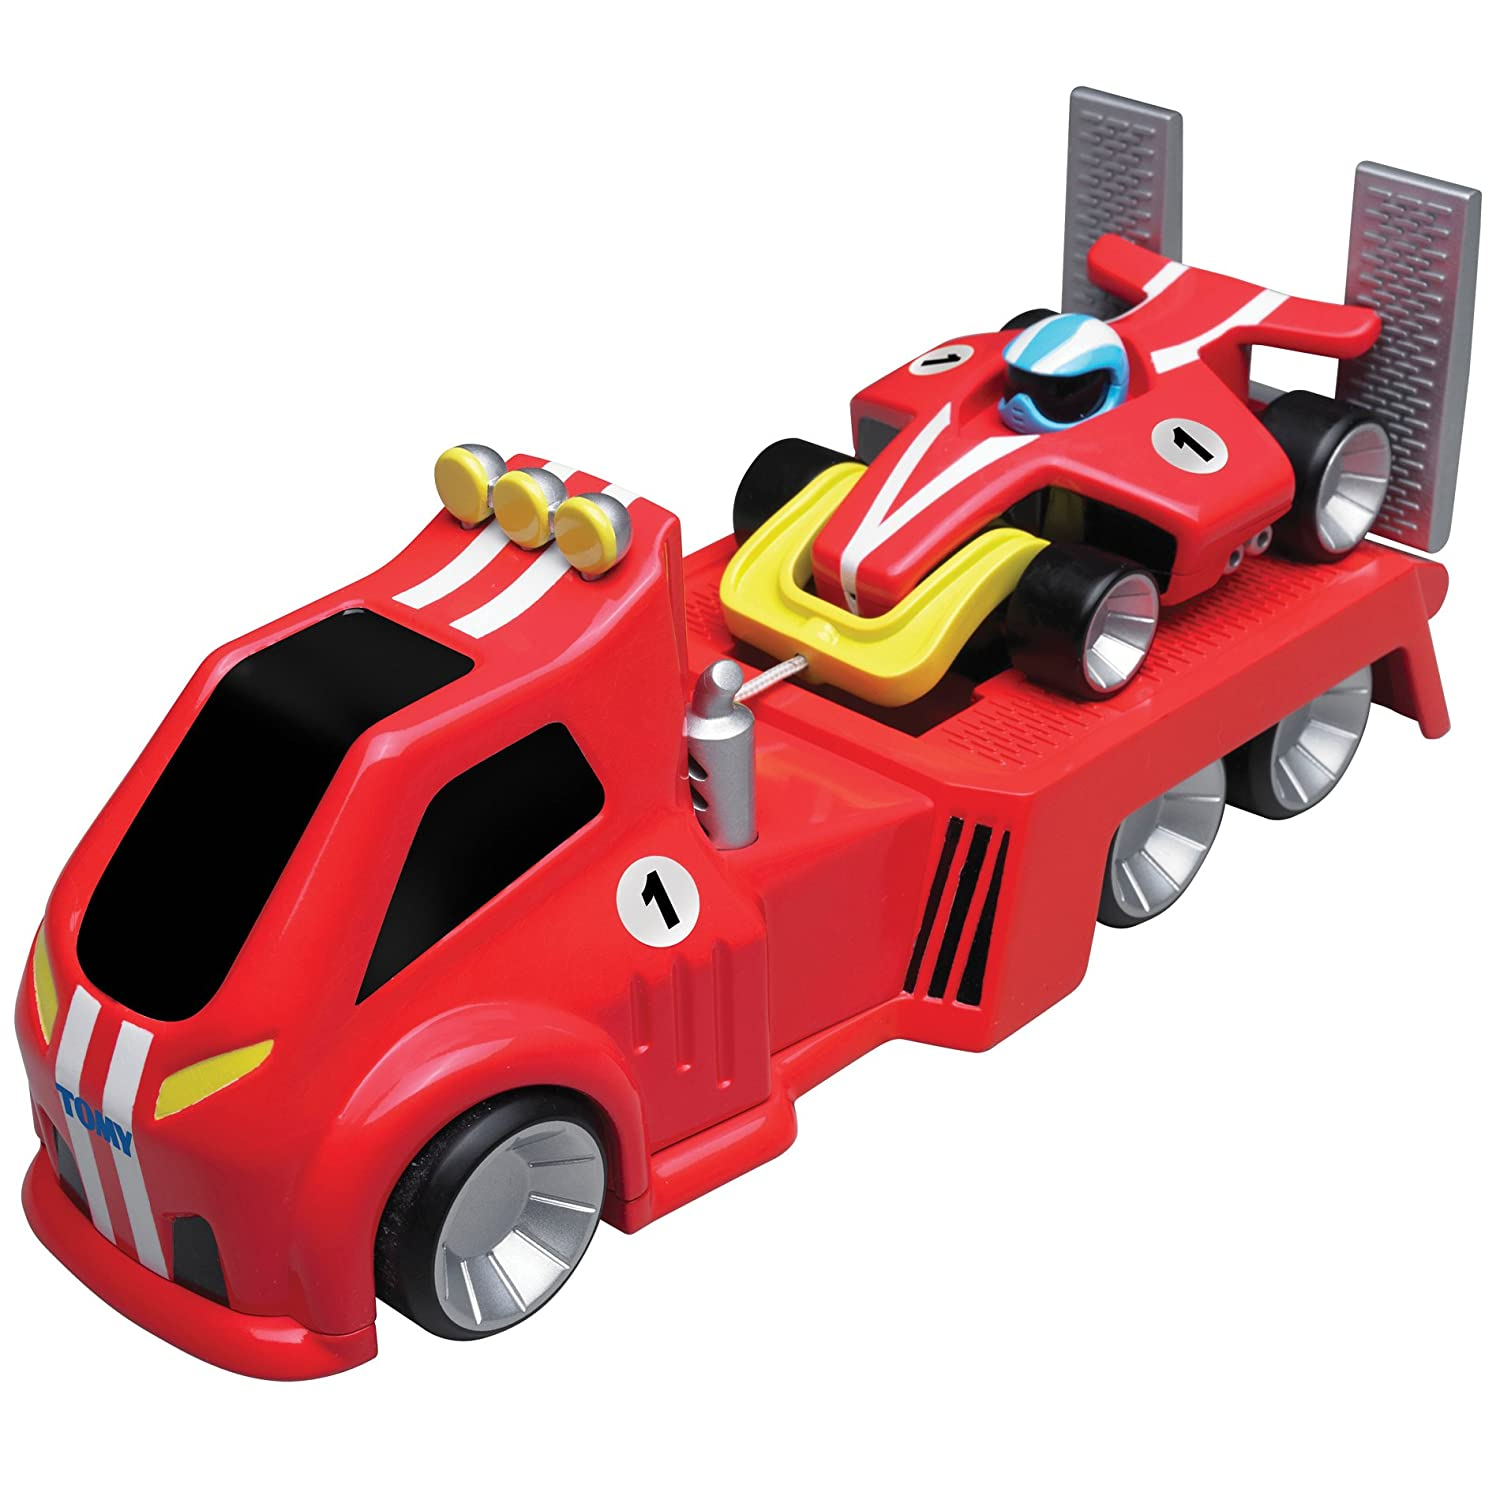 Tomy牽引N ' Go Racer Toy Vehicle   B00BECOCF2